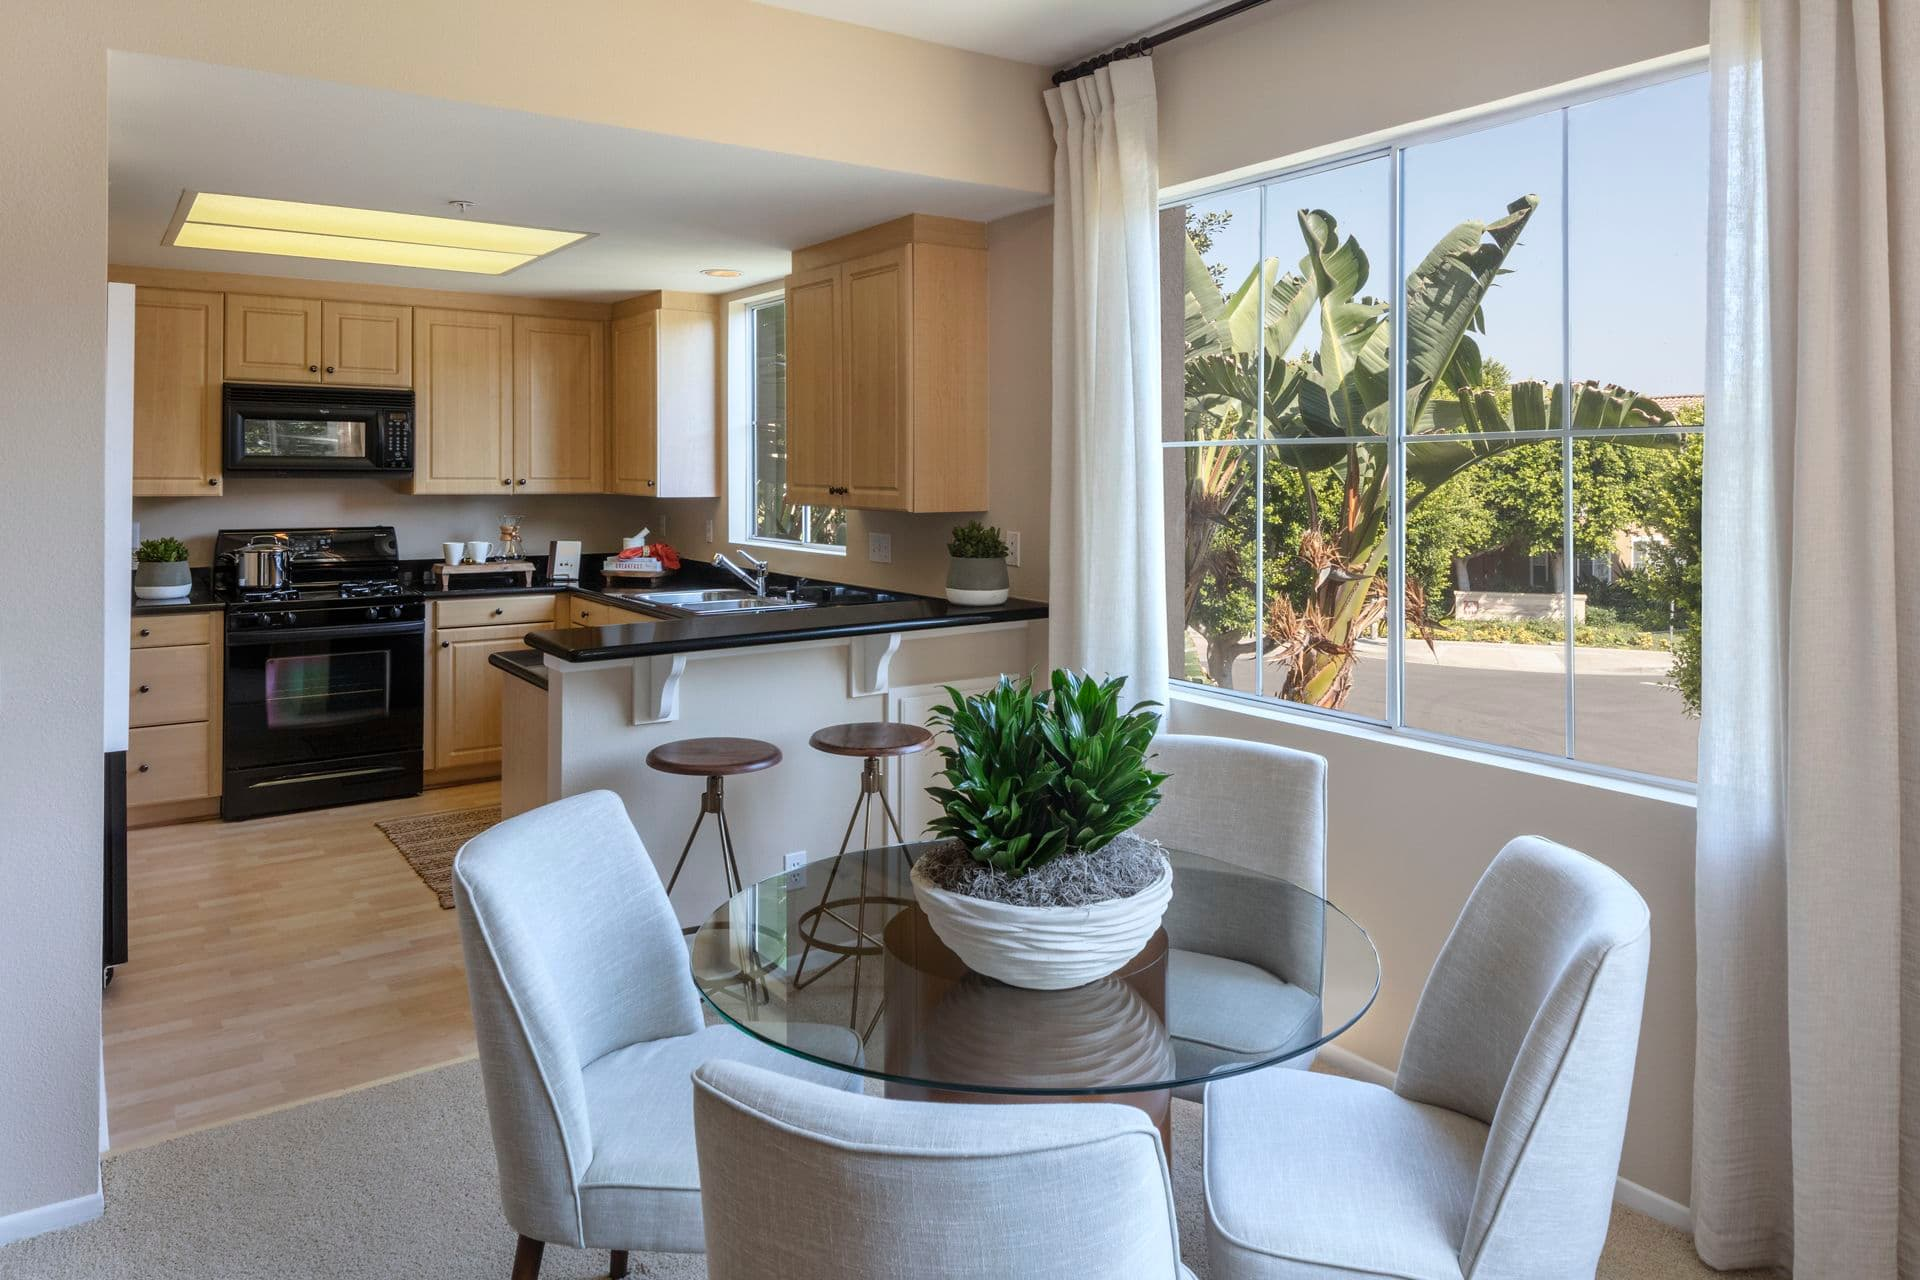 Interior view of kitchen and dining room at Santa Clara Apartment Homes in Irvine, CA.